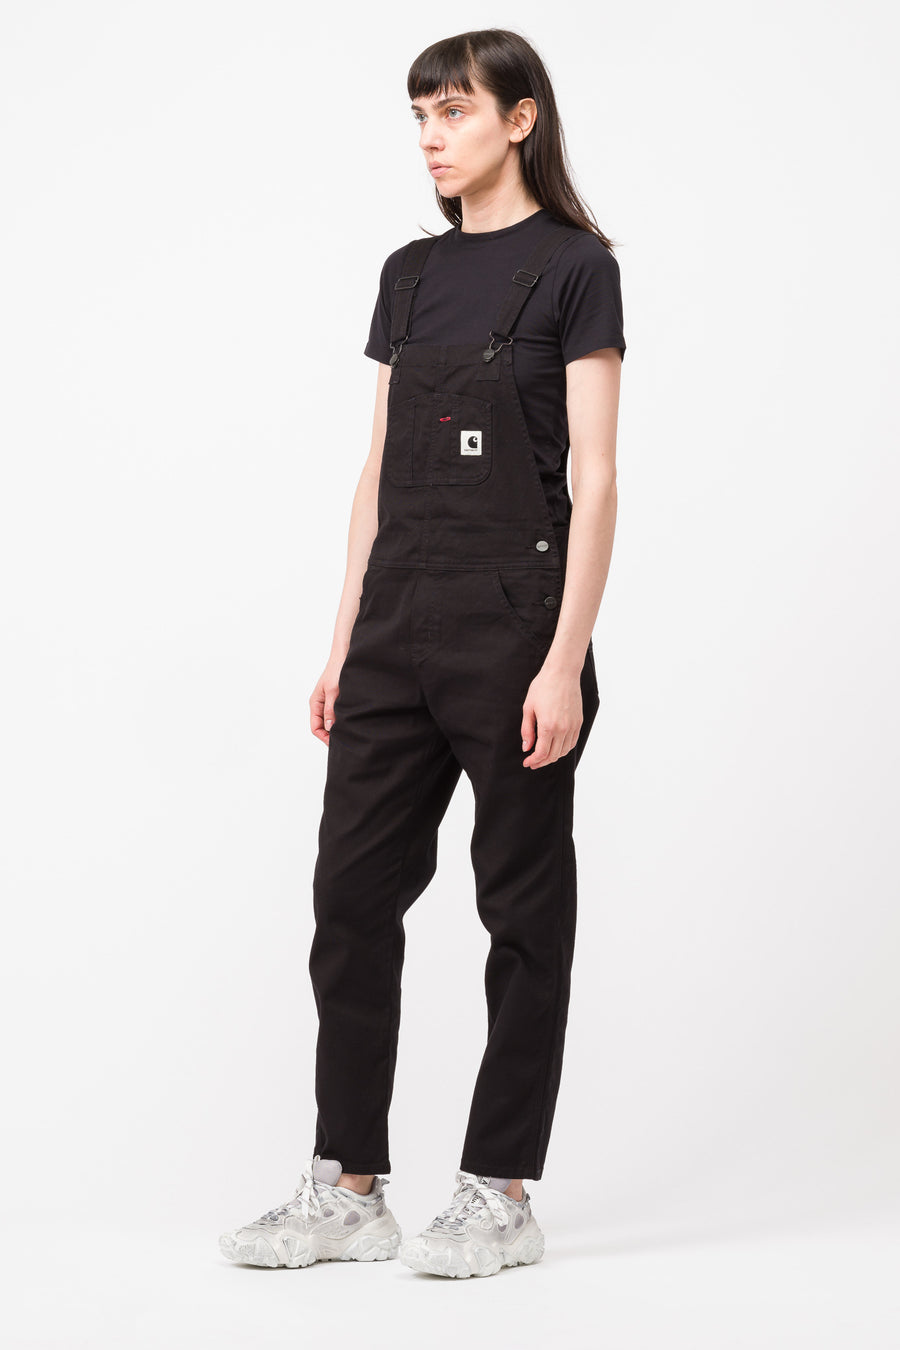 Carhartt WIP Bib Overall Huron Stretch Canvas in Black - Notre